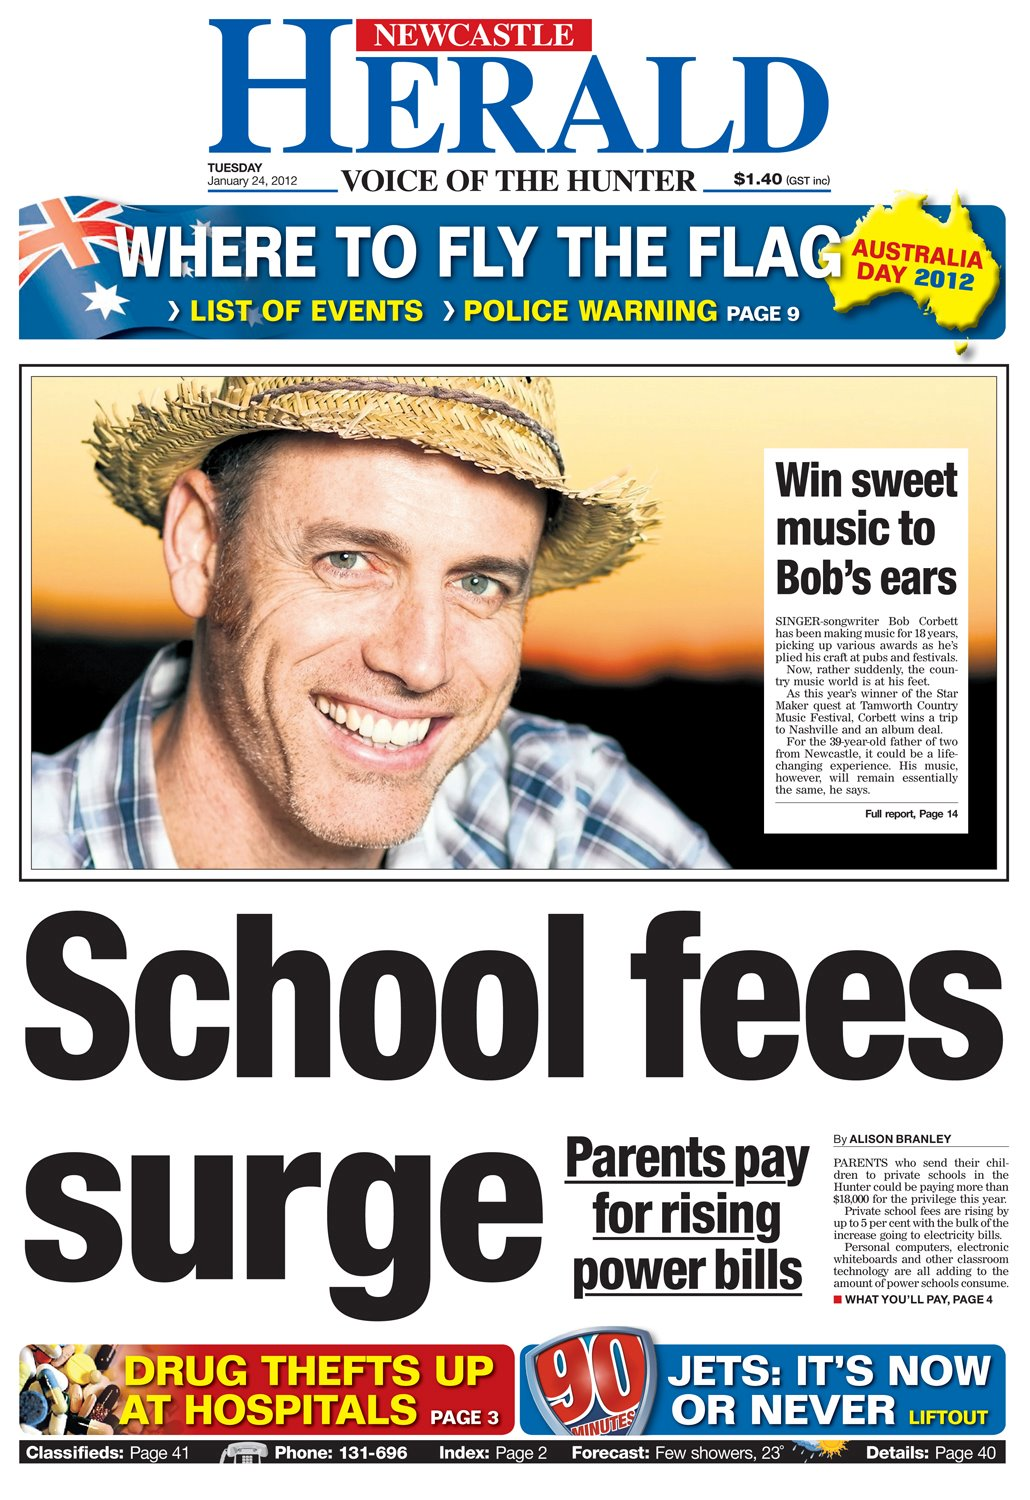 Peter Bower - Bob Corbett The Herald front page